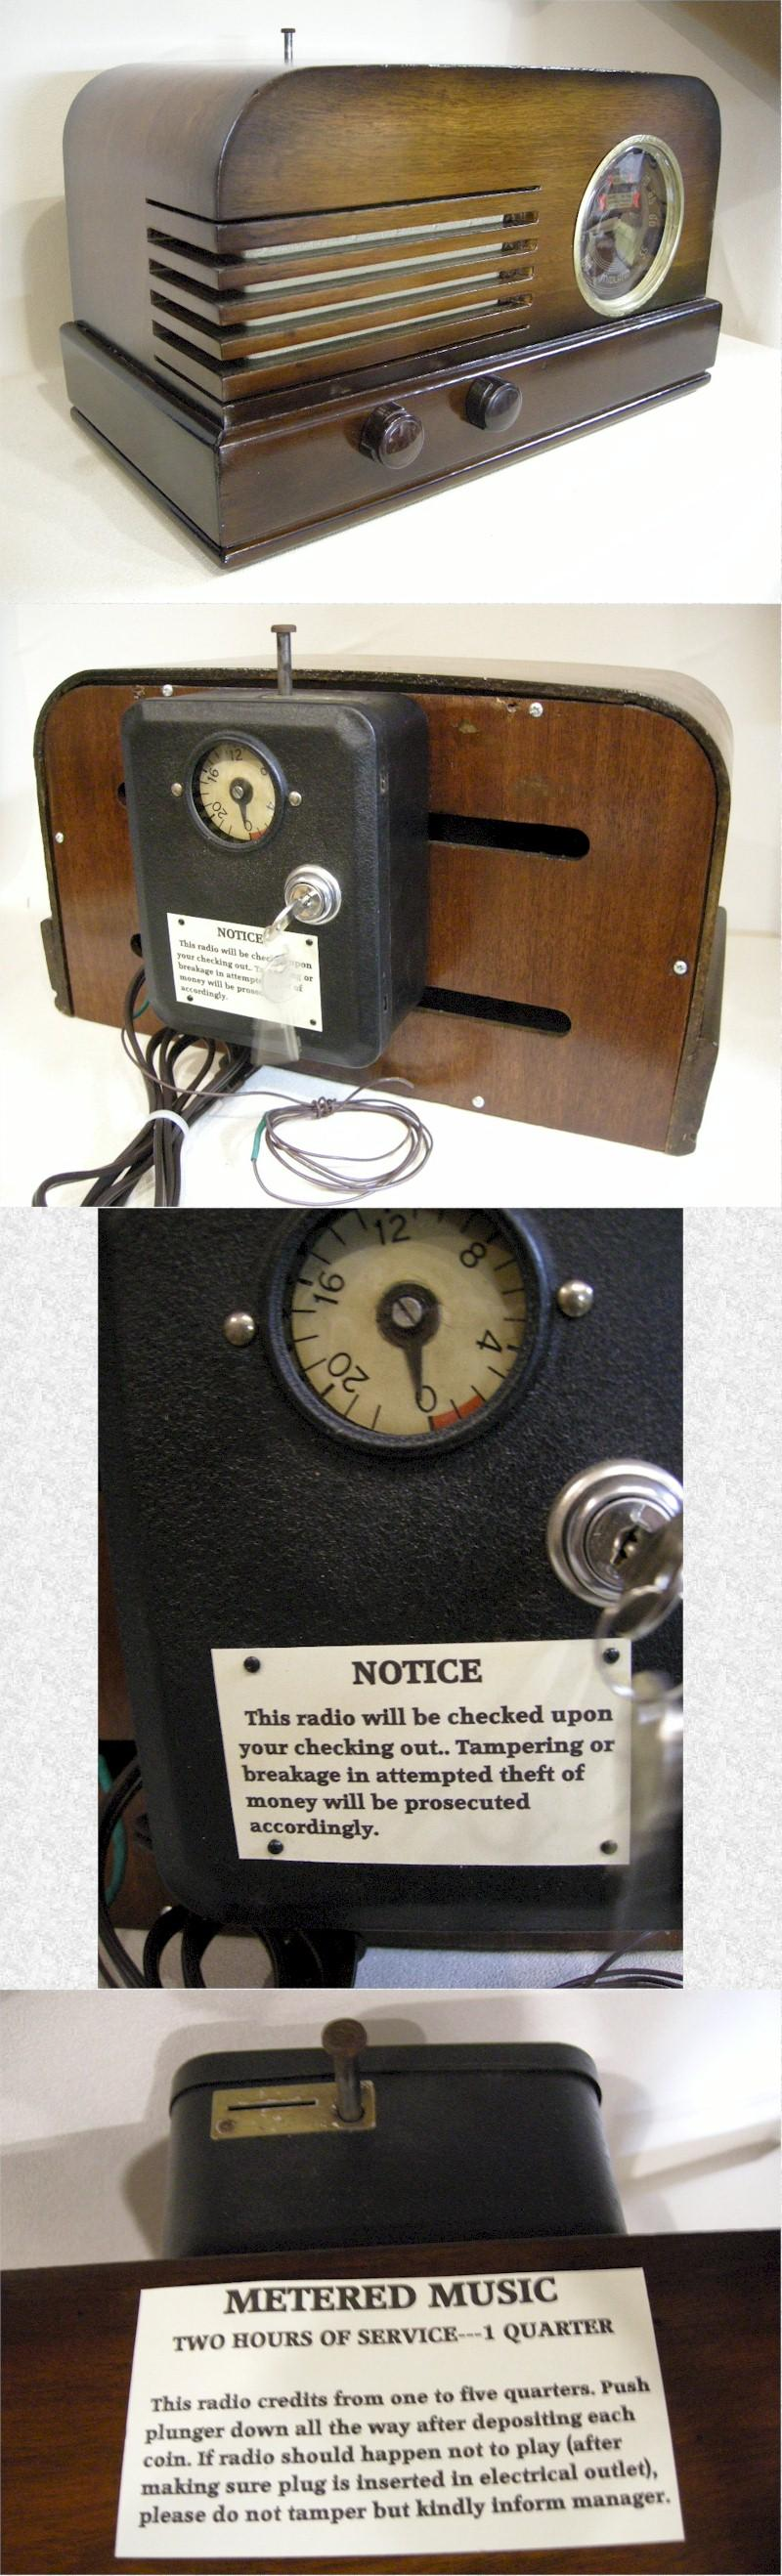 Midland M6B Coin Operated Radio (1946)